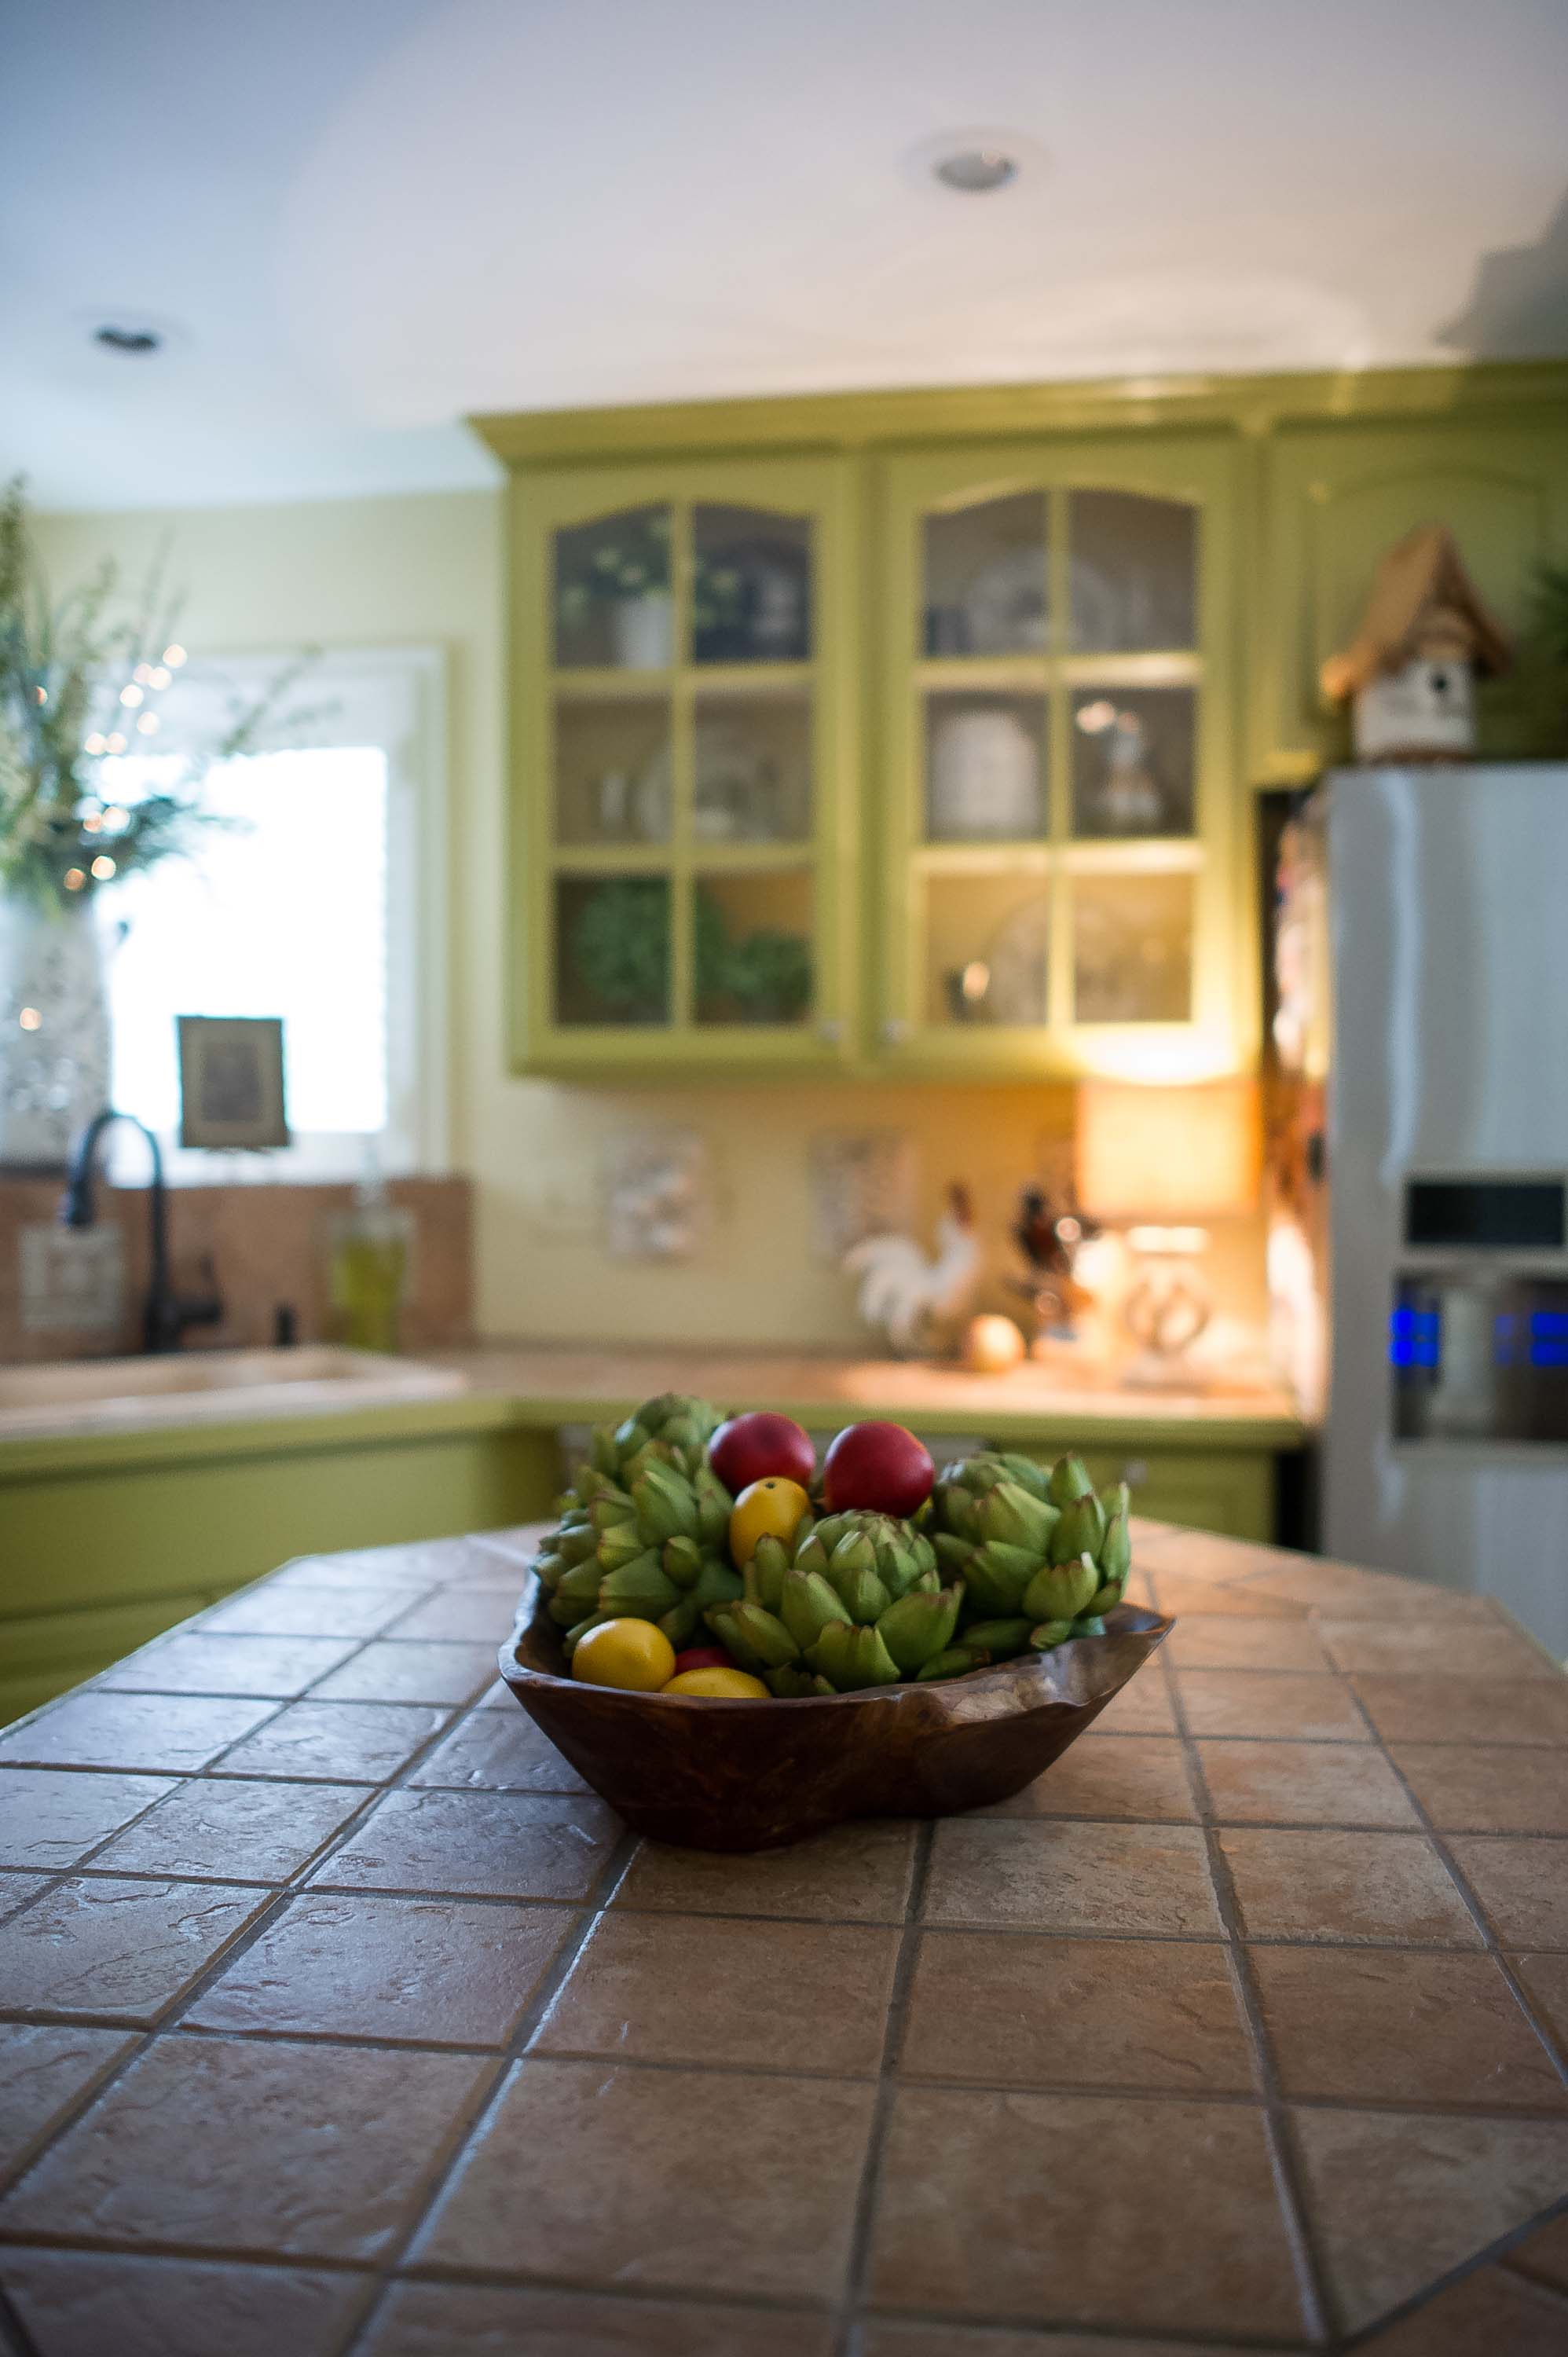 Kitchen with wooden fruit bowl on a ceramic tile countertop